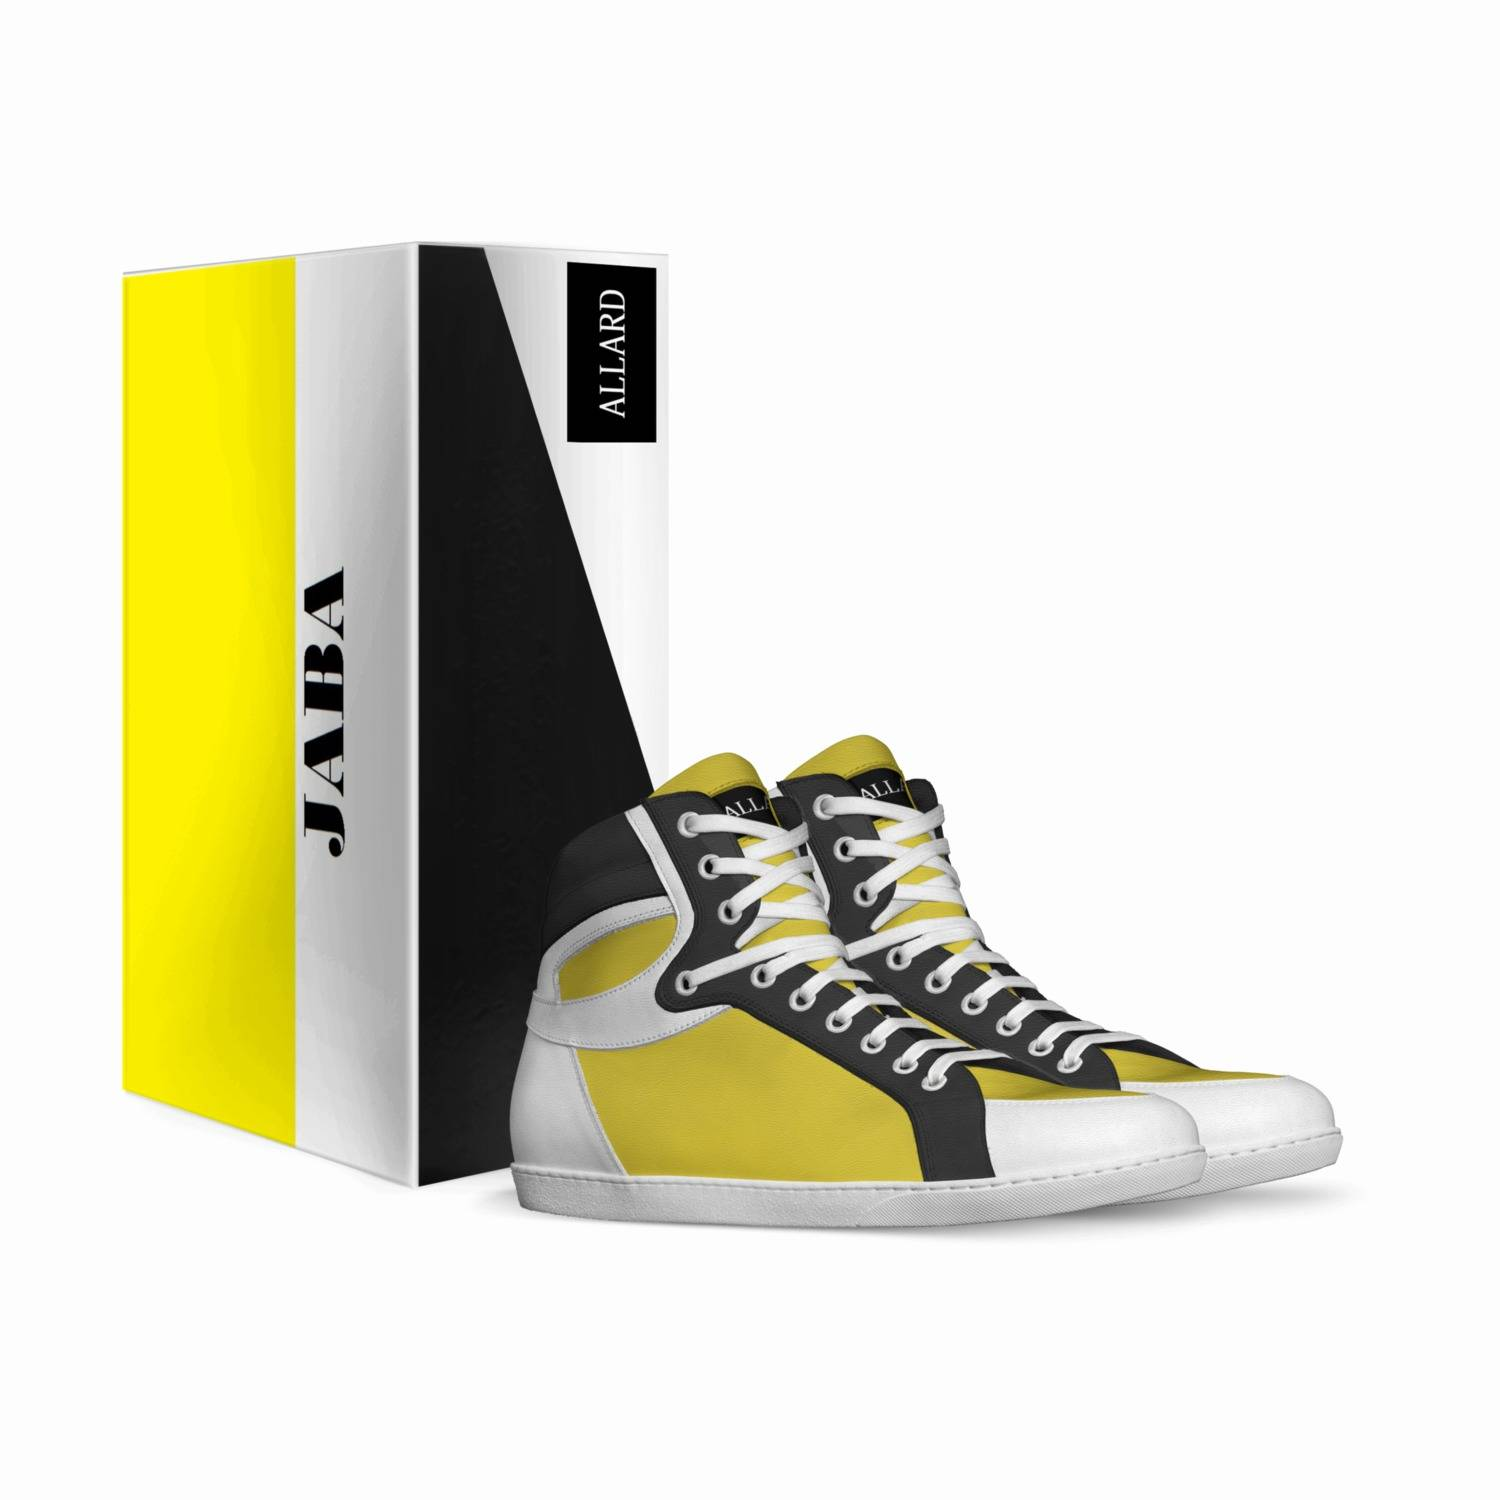 Stylishly Sneaker Design JABA